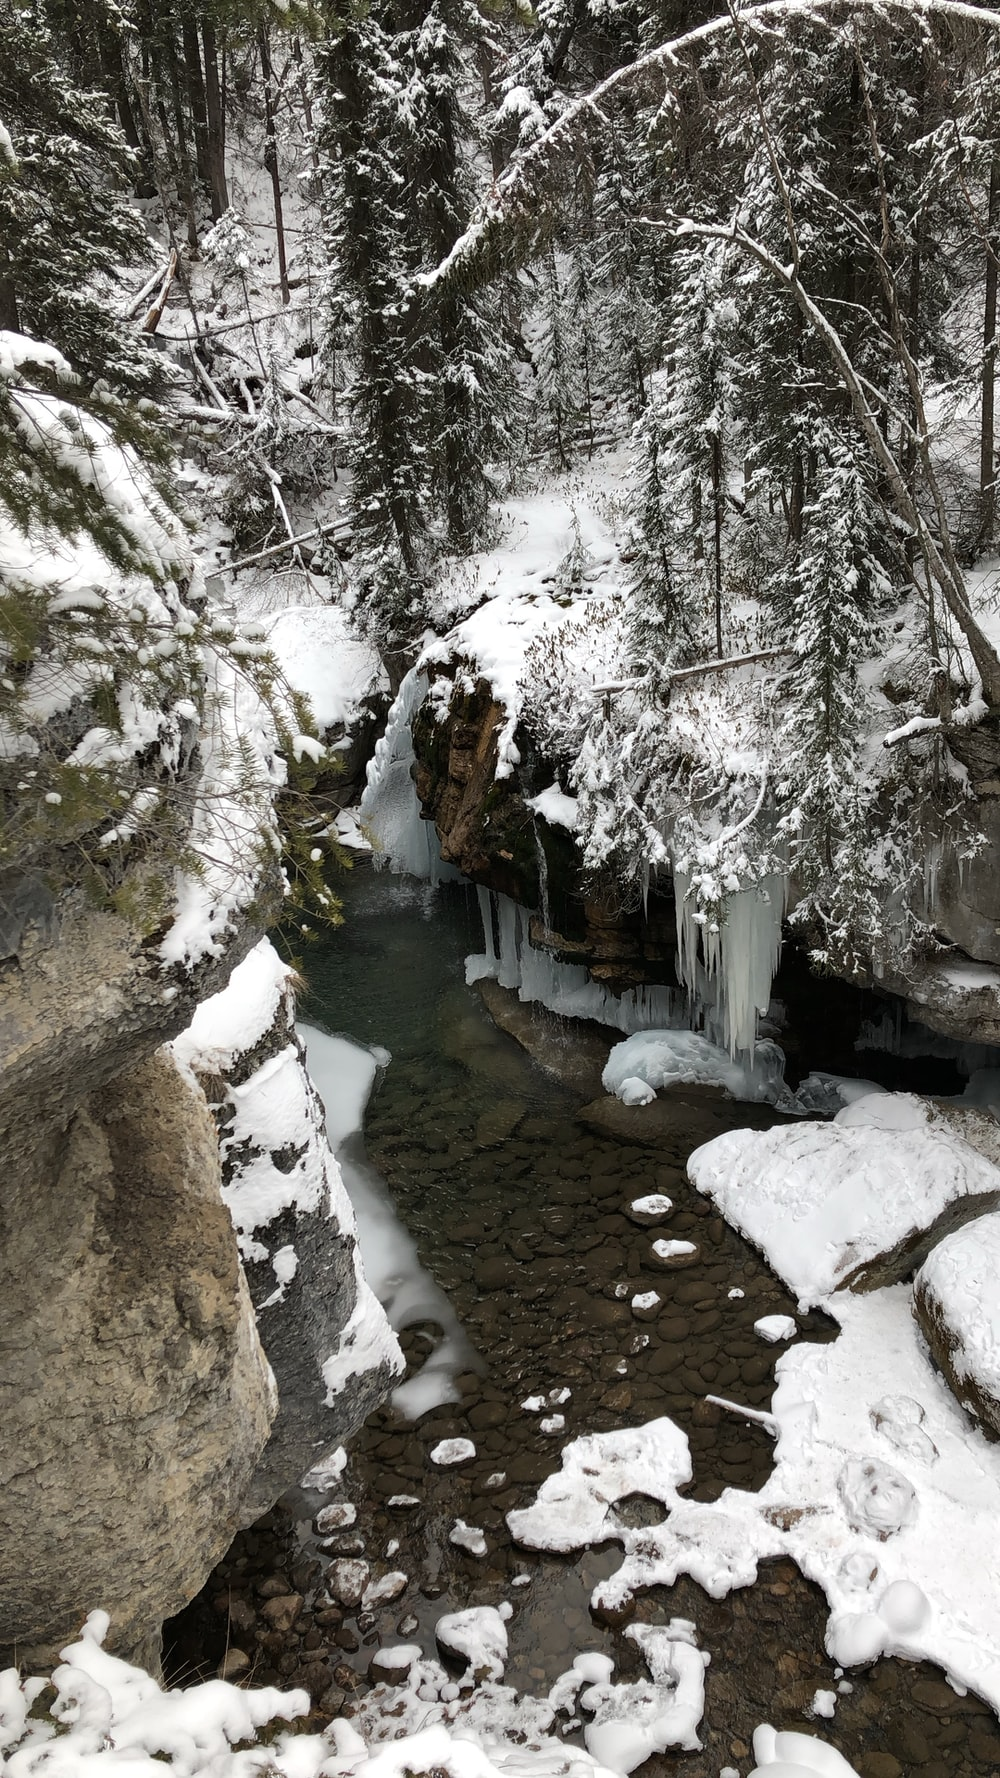 snow covered rock formations and trees